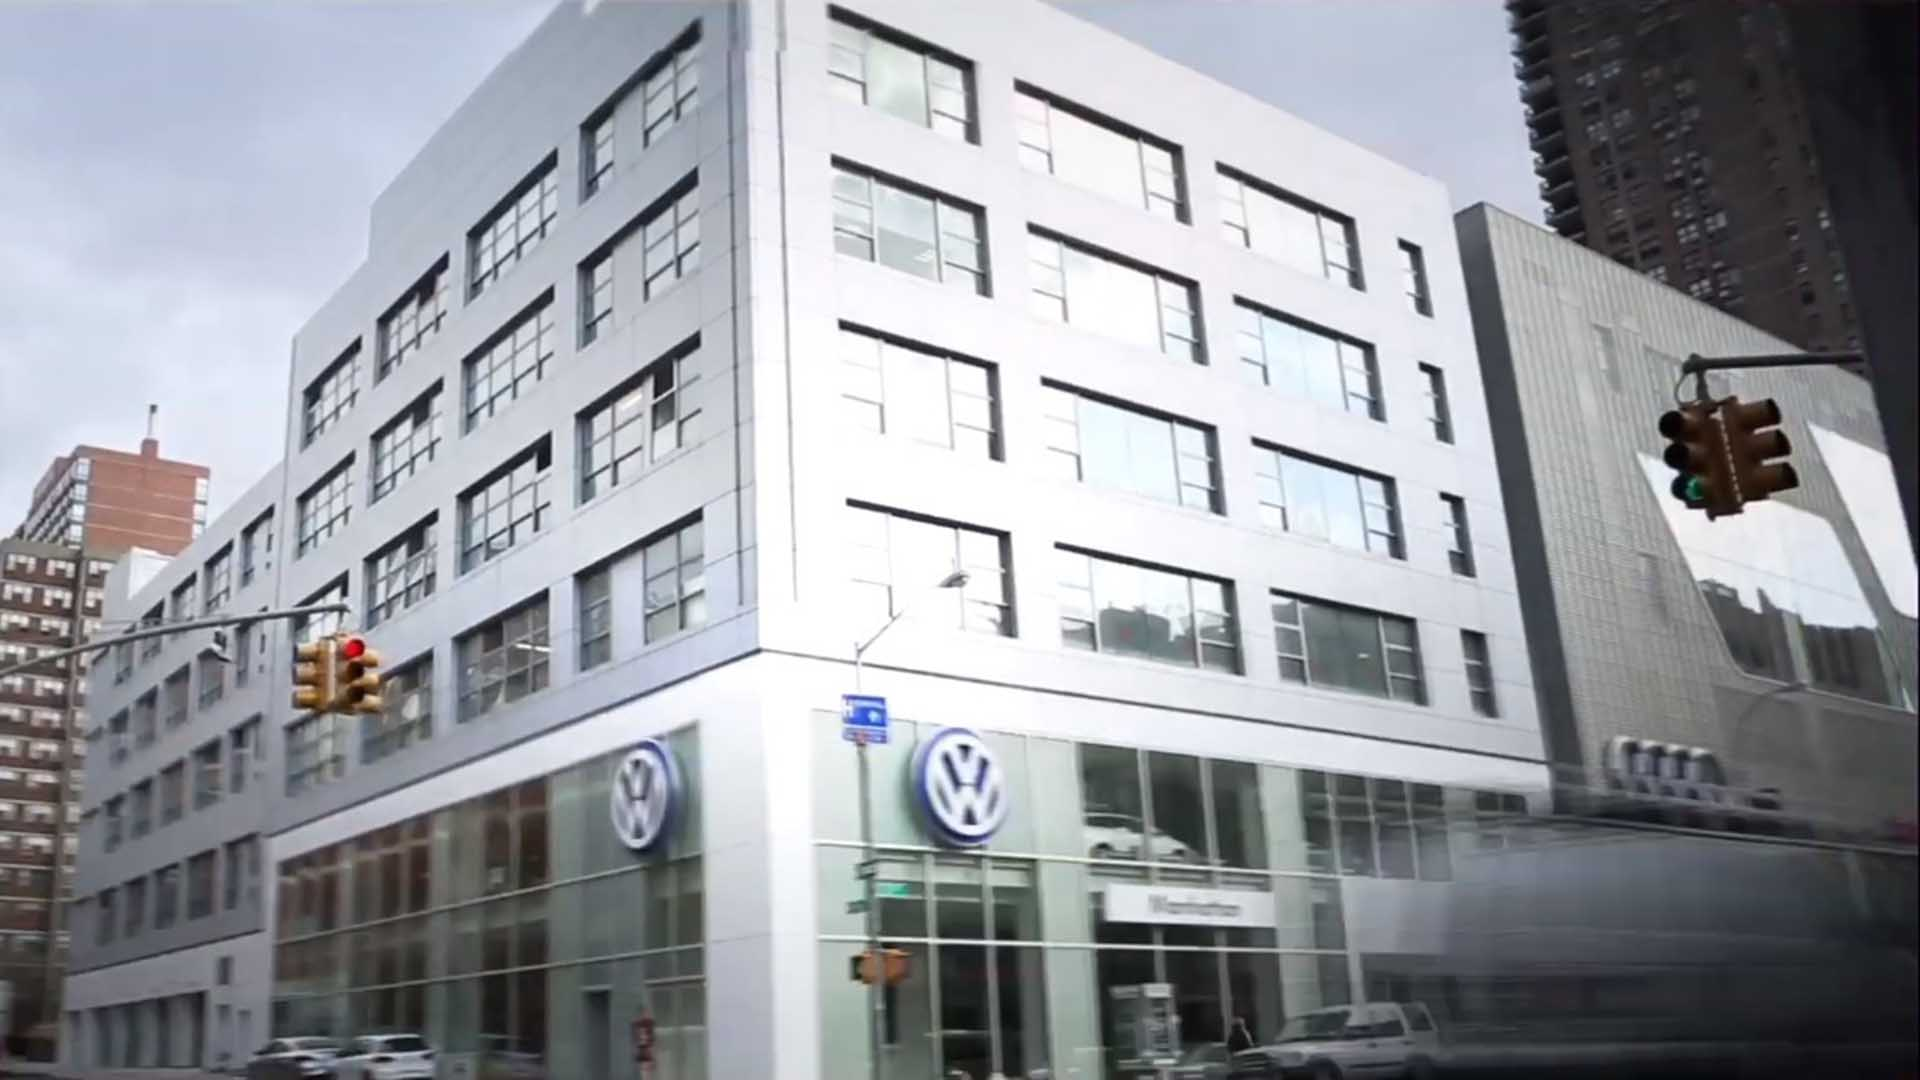 The glass façade fronting the VW Manhattan dealership was built by general contractor J.T. Magen & Company Inc. on Eleventh Avenue, New York.